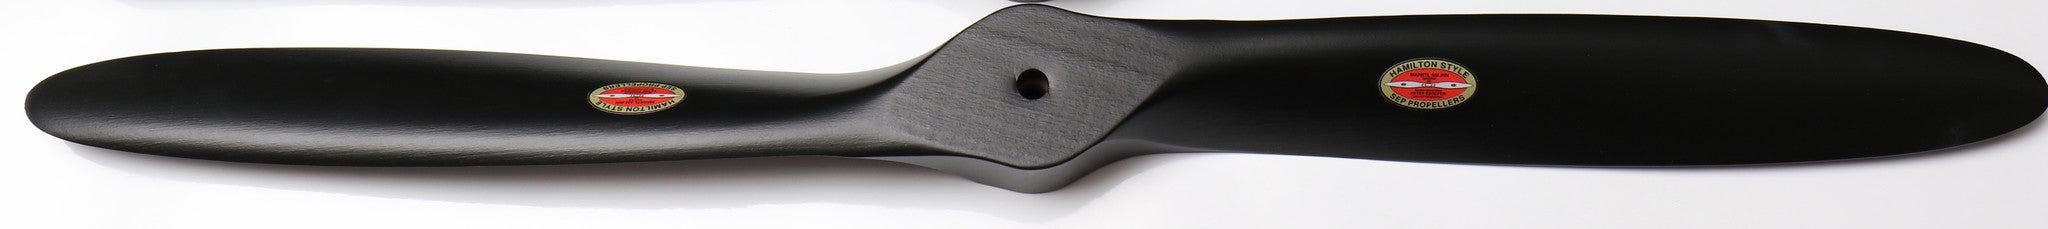 SEP Propellers - 2 Blade Black Scale Blade